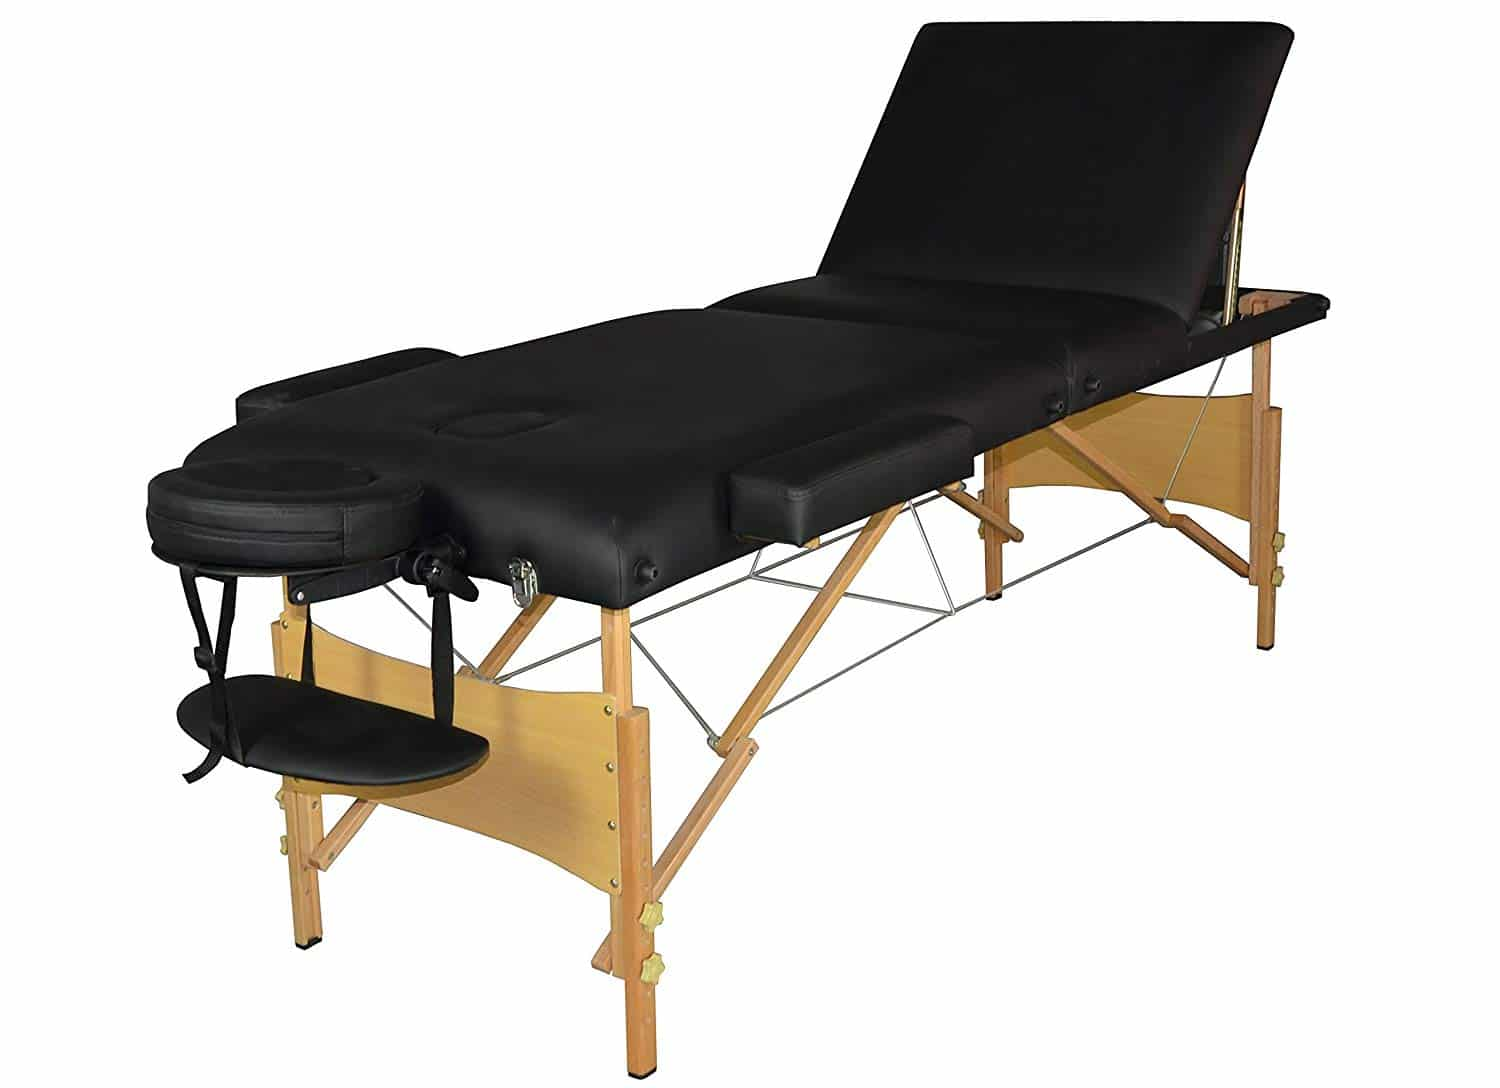 Massage Table Massage Bed Spa Bed 73 Inch Portable Heigh Adjustable 3 Folding Massage Table Salon Bed W/Carry Case